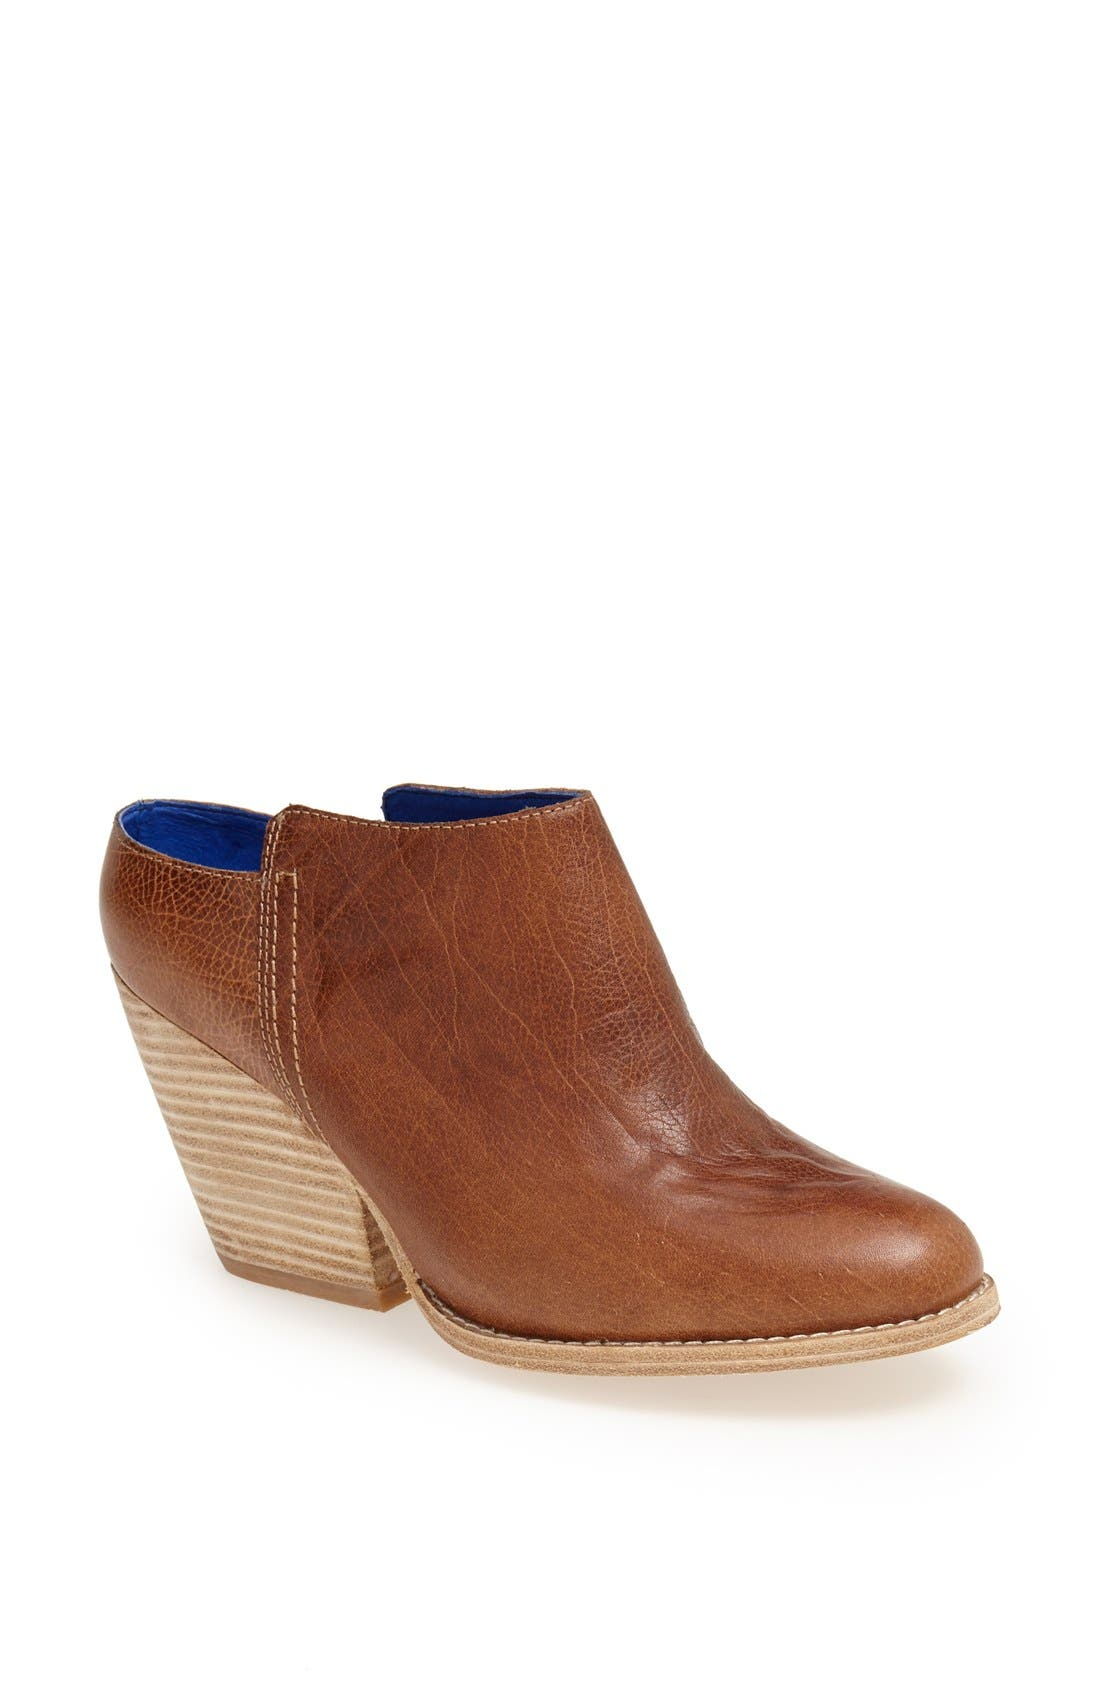 Alternate Image 1 Selected - Jeffrey Campbell 'Vinton' Leather Bootie